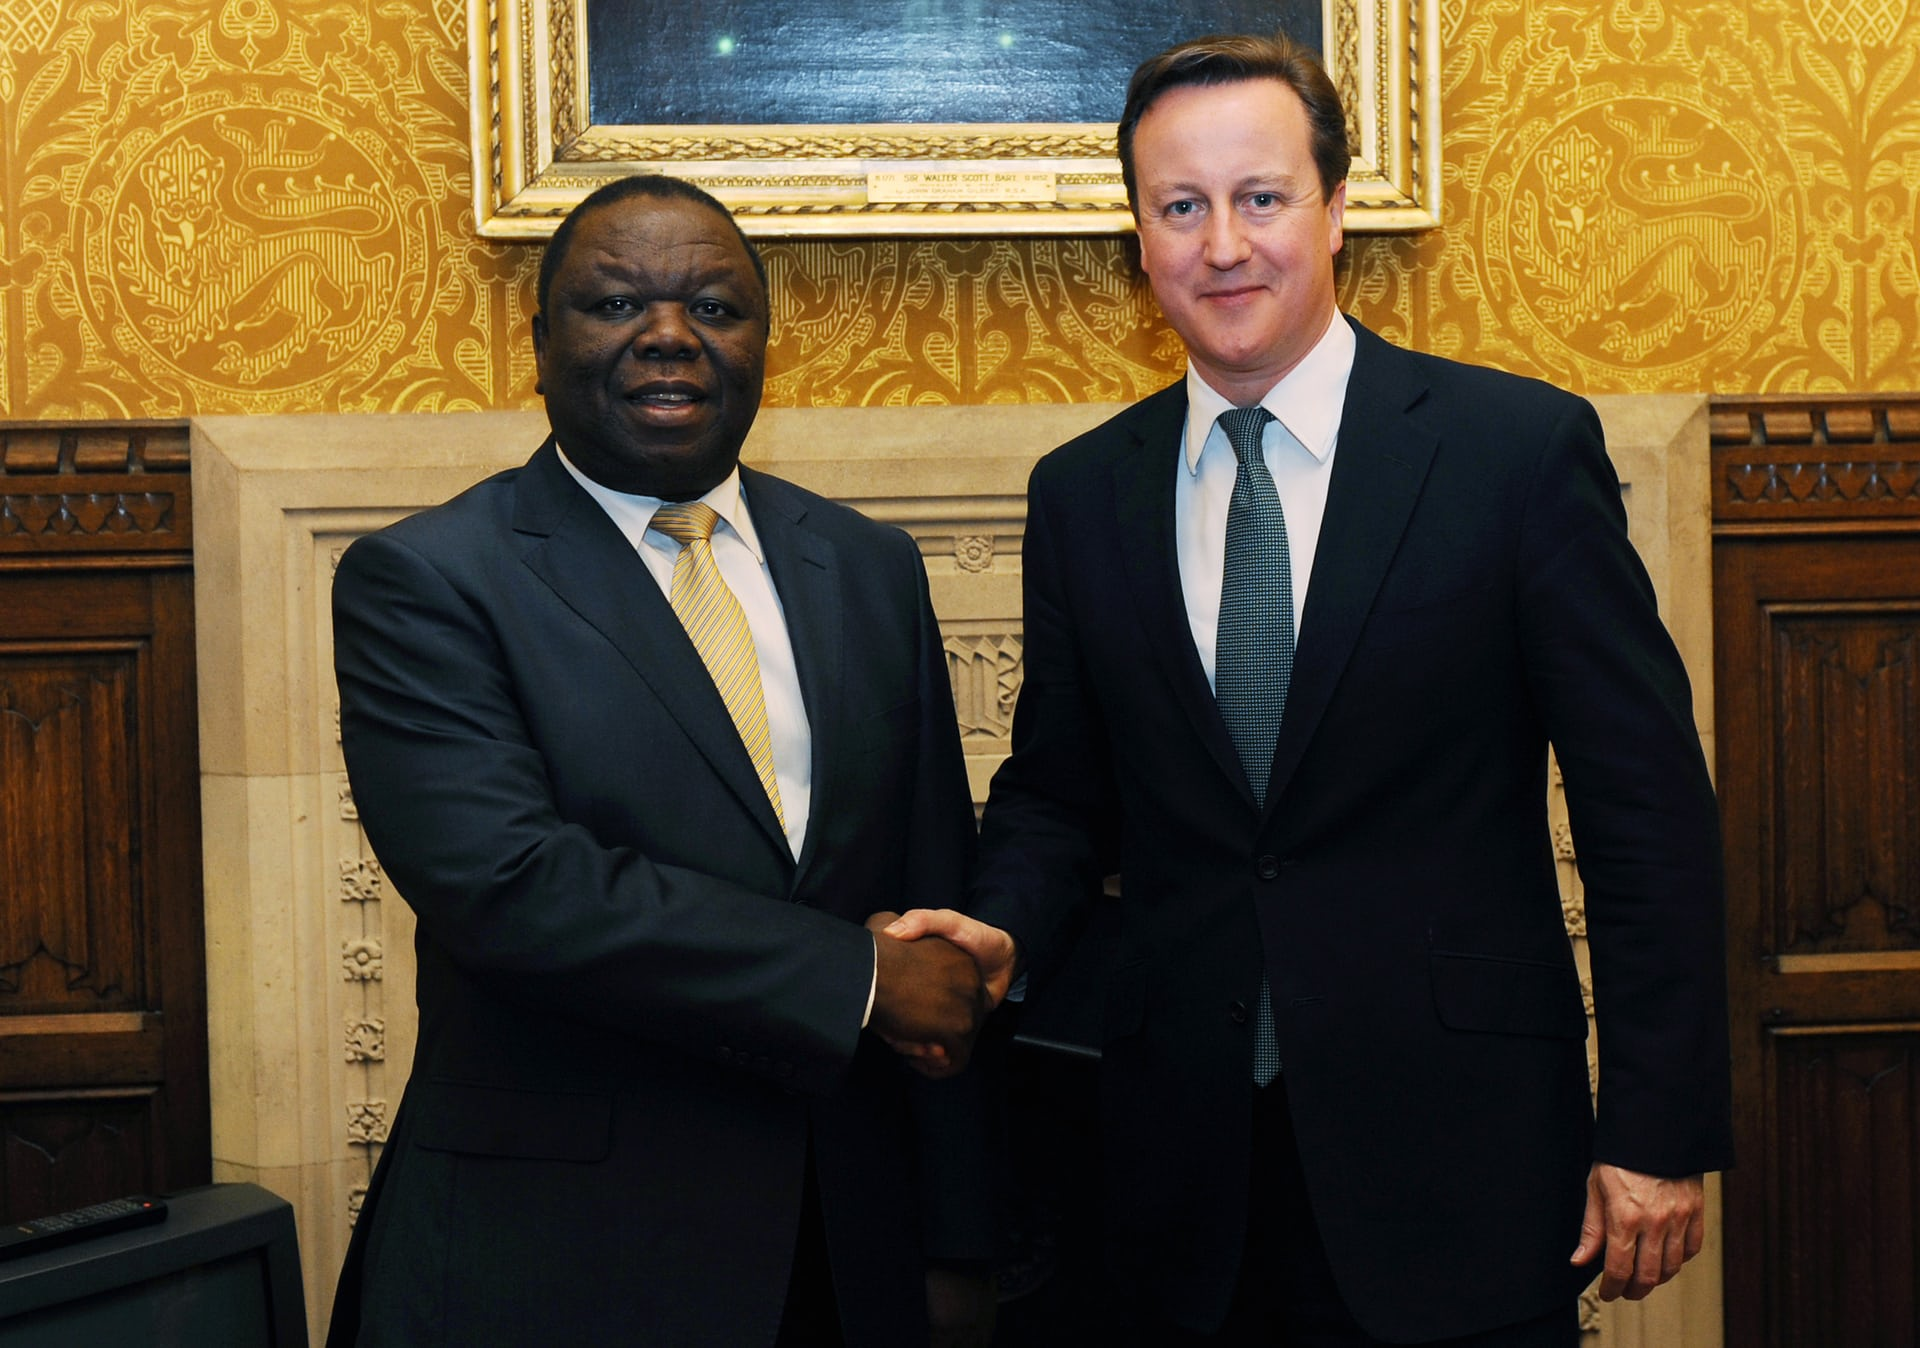 Tsvangirai meets then British prime minister David Cameron at the House of Commons in 2012.